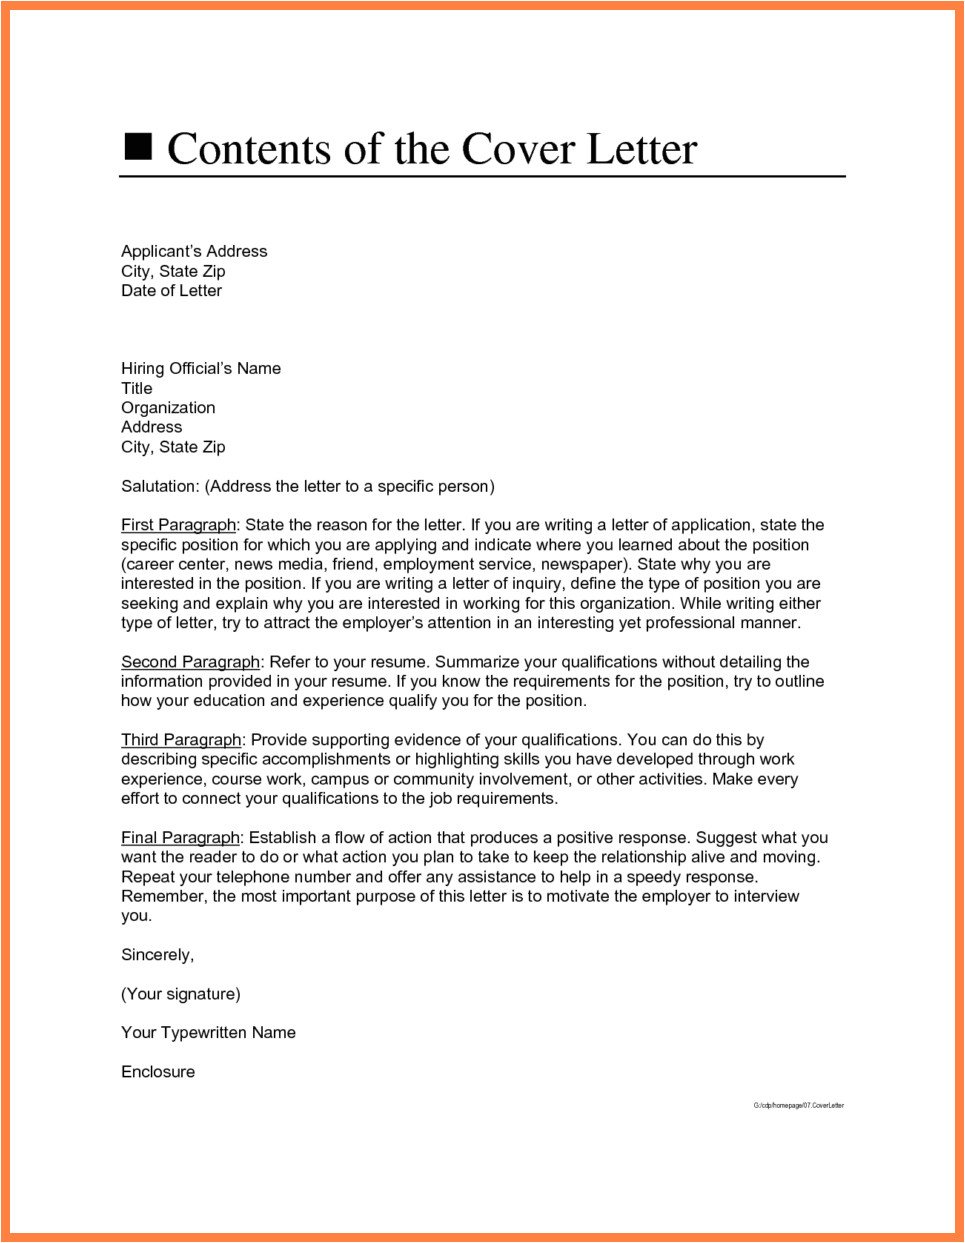 Who Do You Direct A Cover Letter to 5 Cover Letter Address Marital Settlements Information